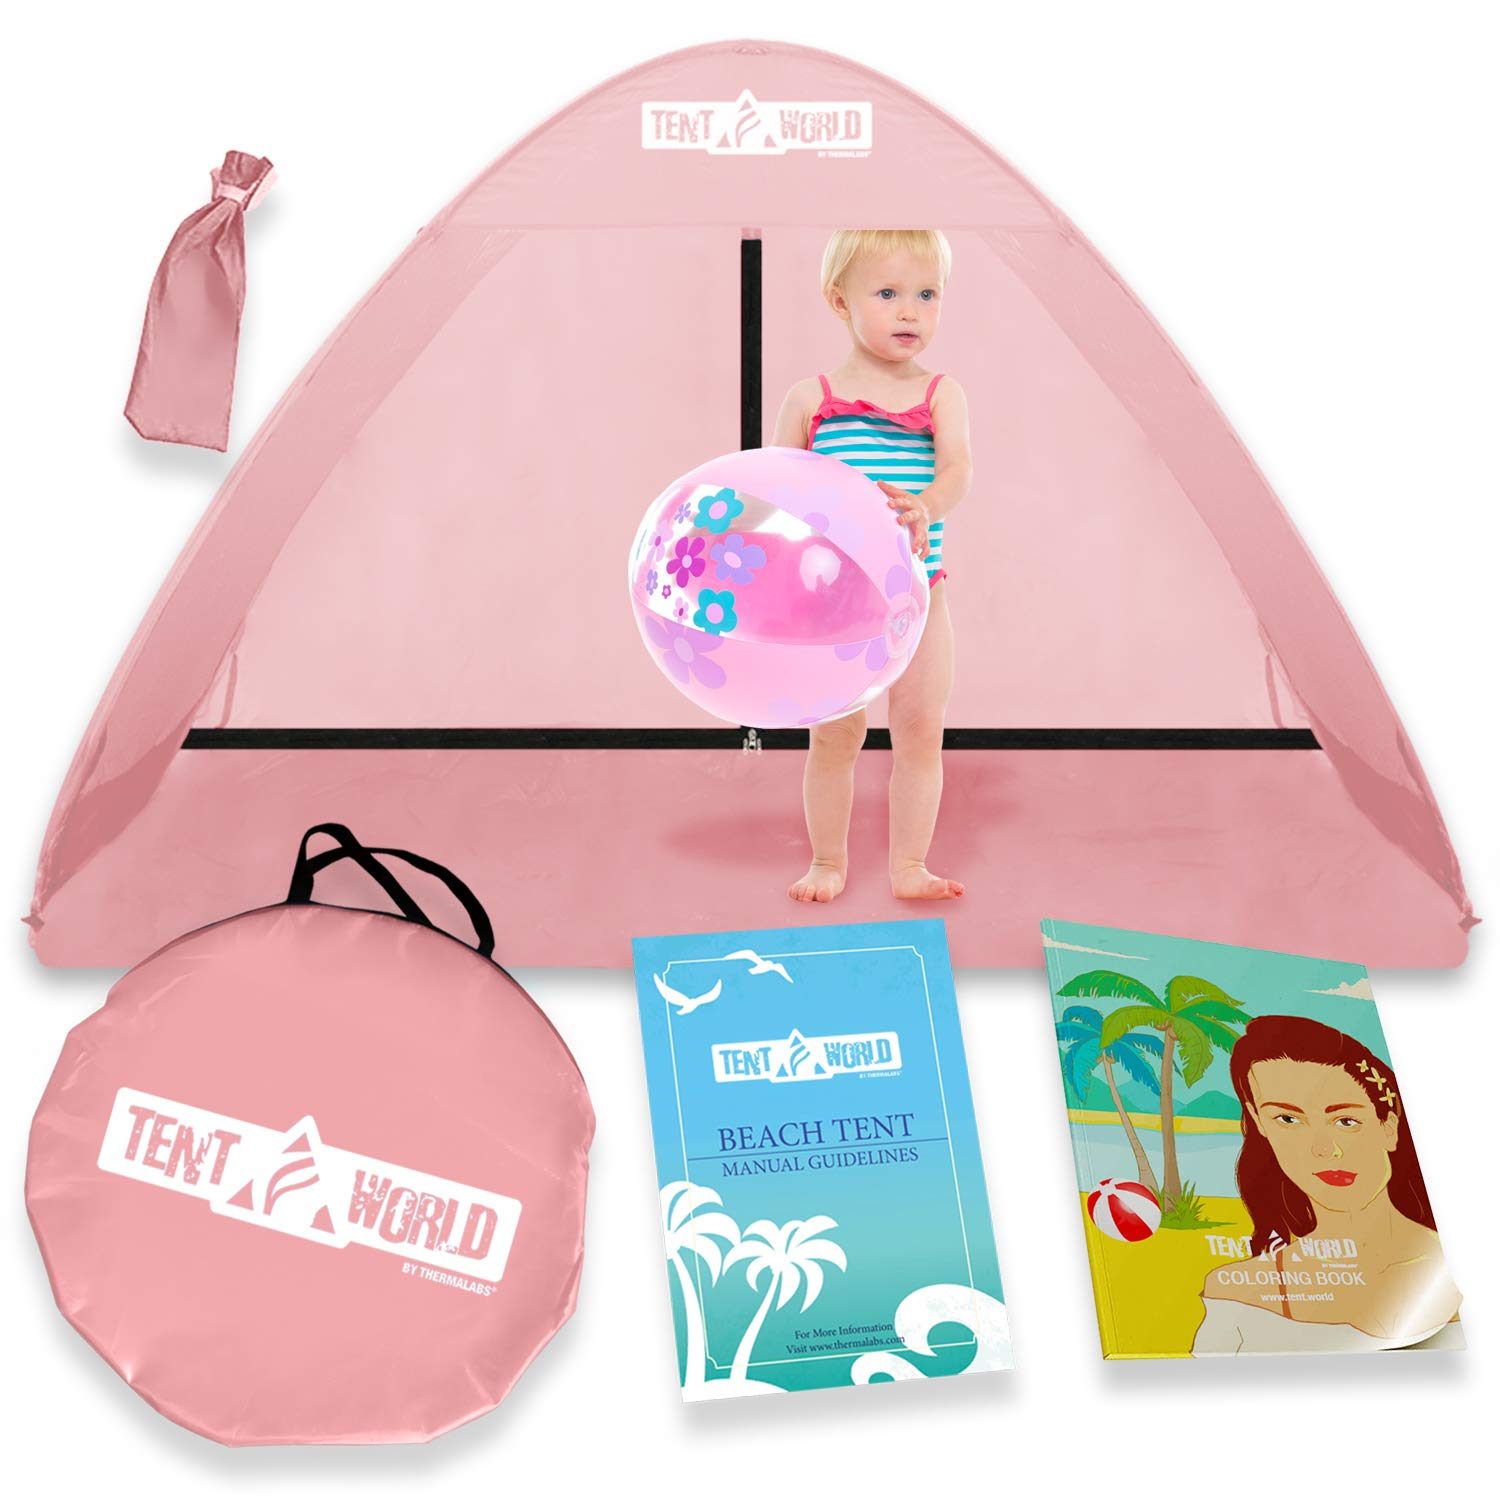 Pop Up Beach Baby Tent for Toddler, Kids, Girls, Boys, Infant & Babies. Popup Sun Protection Shelter Canopy for Camping & Travel Bebe Toddlers Backyard & Indoor Small Play Shade Cabana Dome